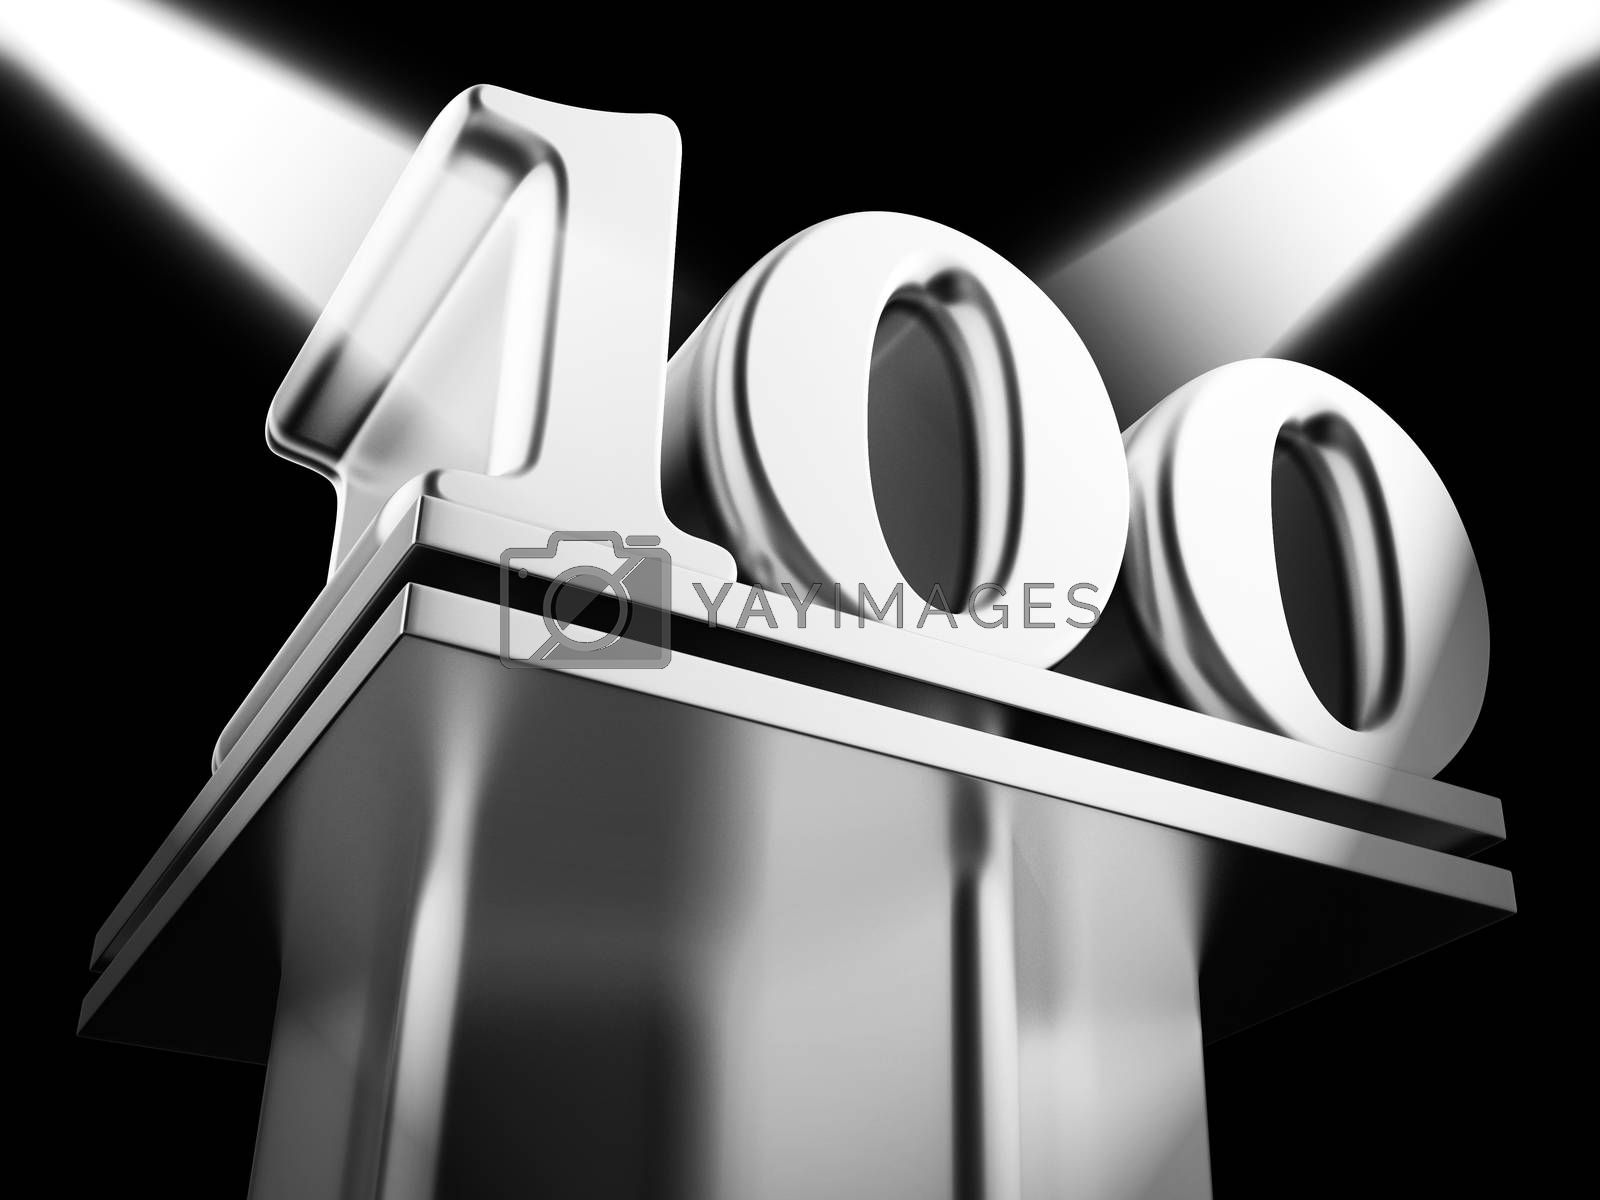 One hundred year celebration icon shows 100 years anniversary. Wishing warm congratulations on a centennial - 3d illustration